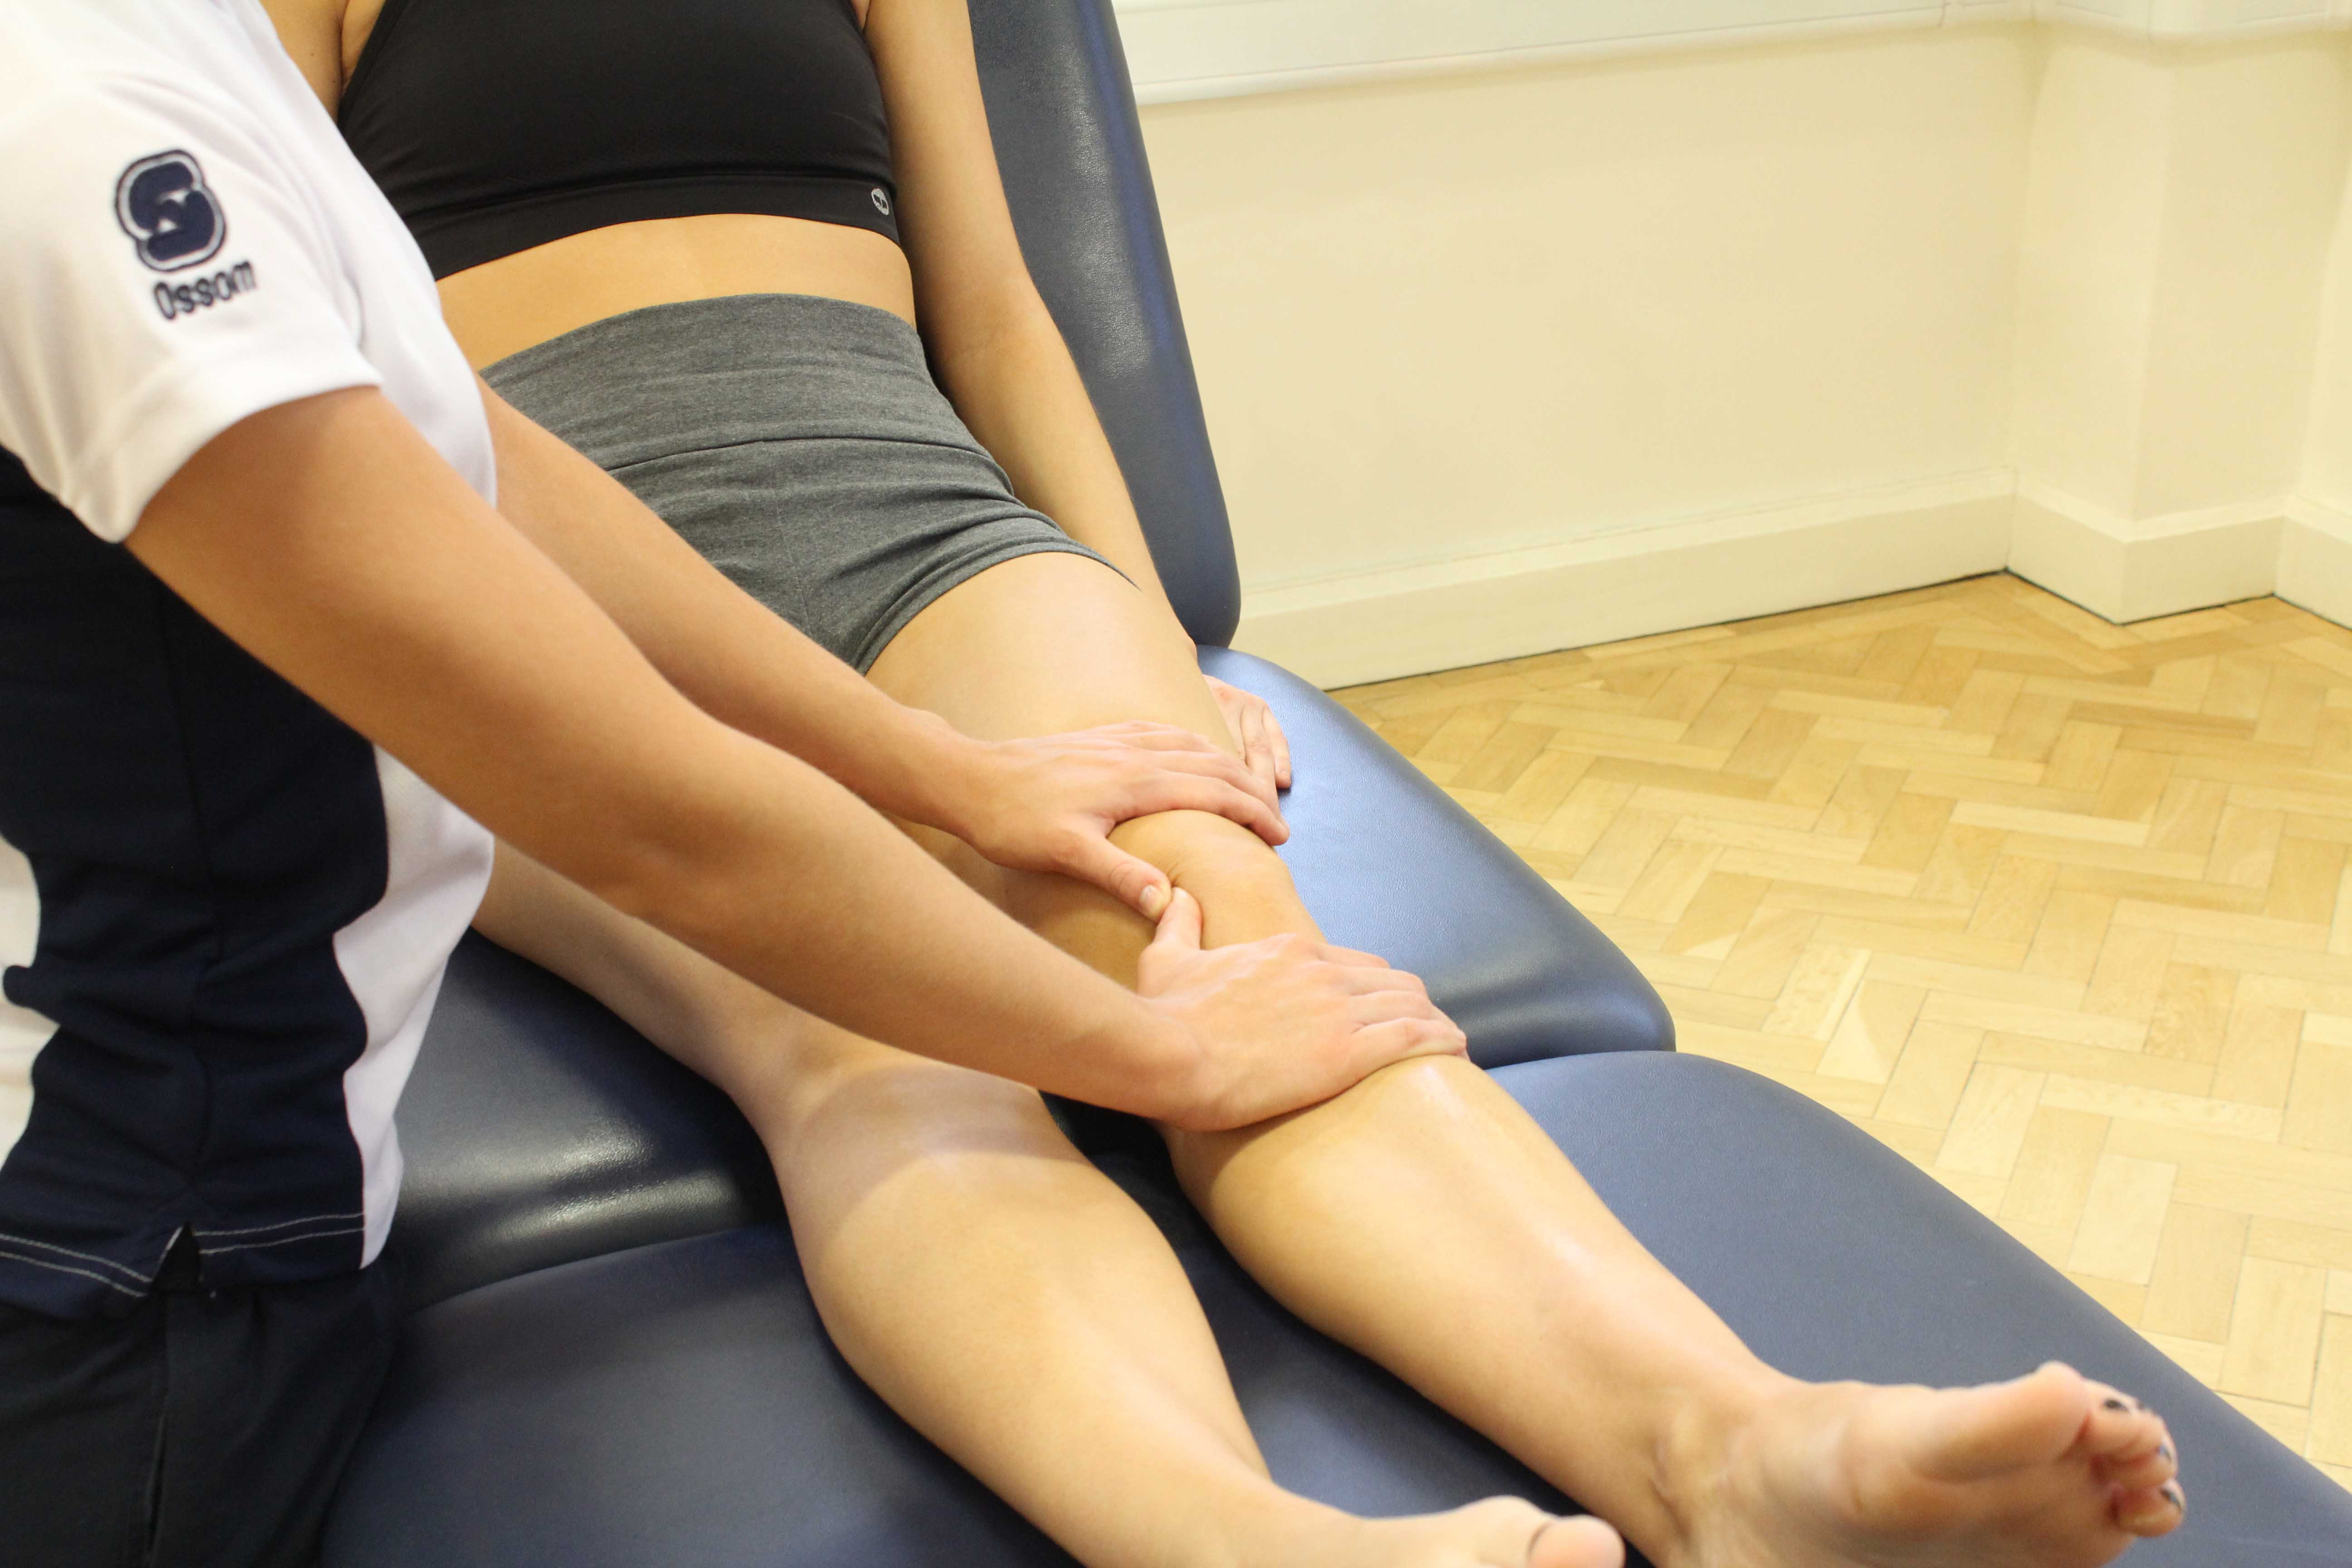 Mobilisations of the patella to relieve painful symptoms